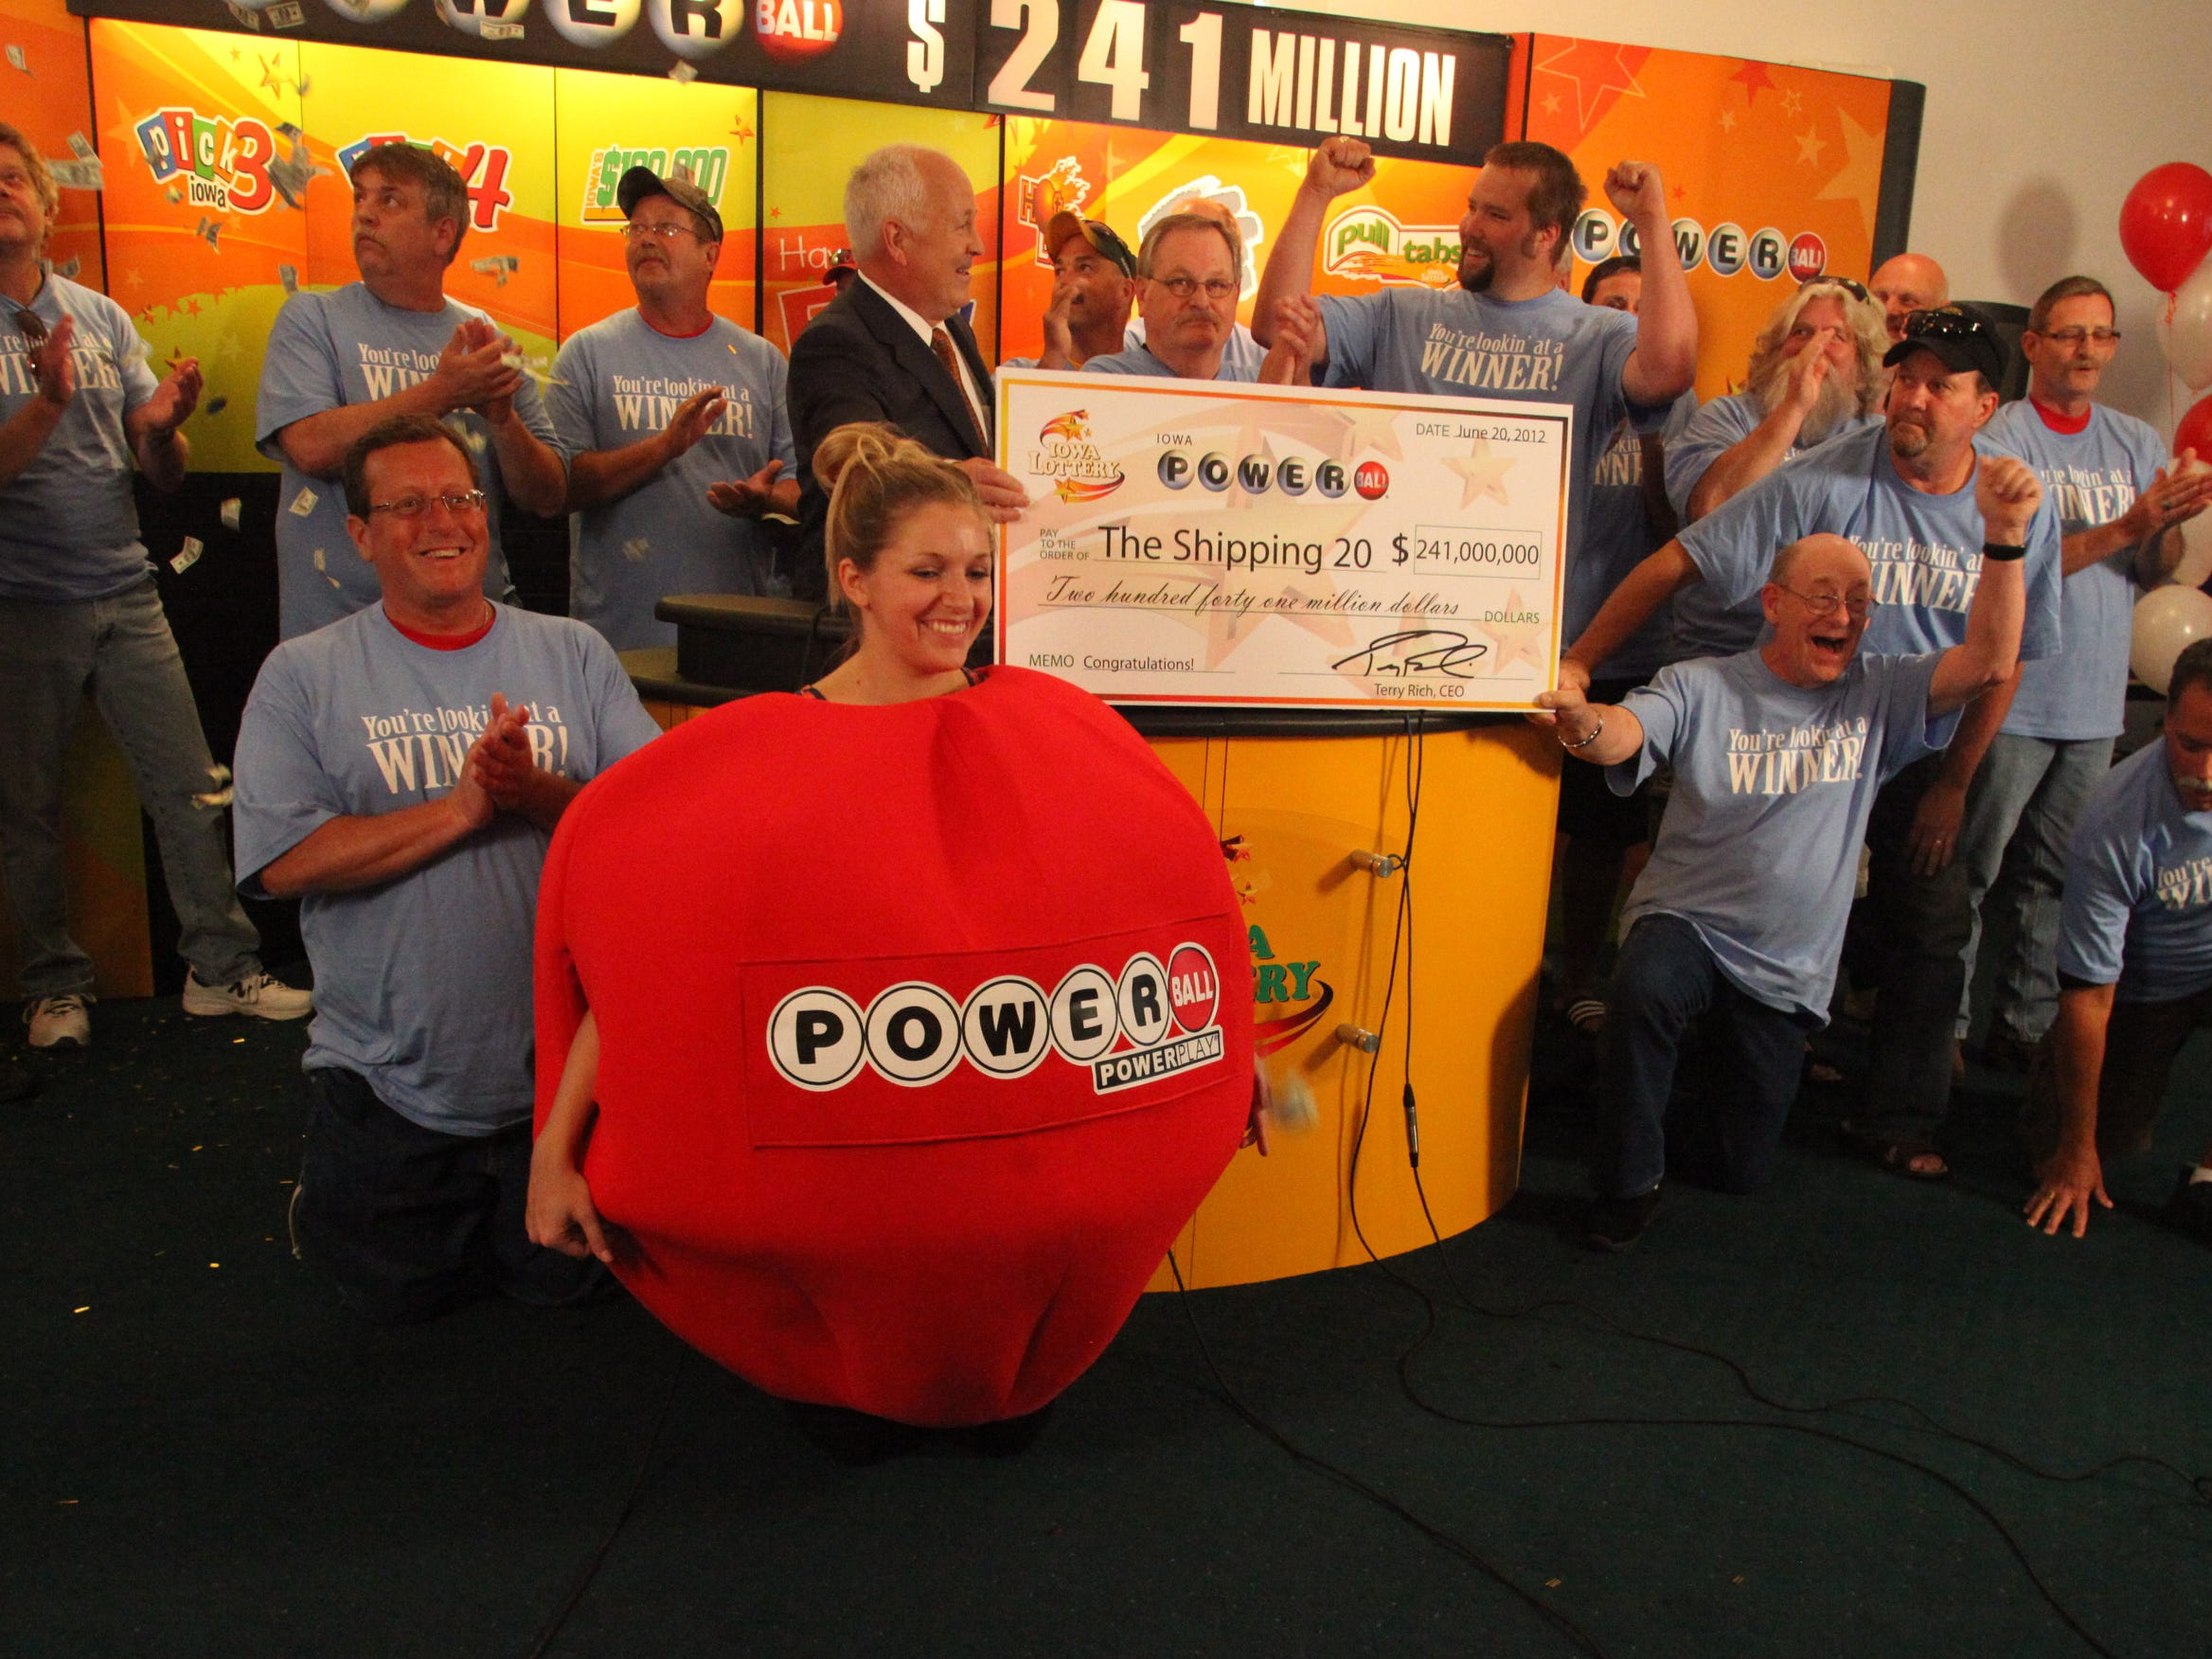 June 2012: The Shipping 20, a group of co-workers in the shipping department at the Quaker Oats plant in Cedar Rapids, split a $241 million Powerball jackpot.